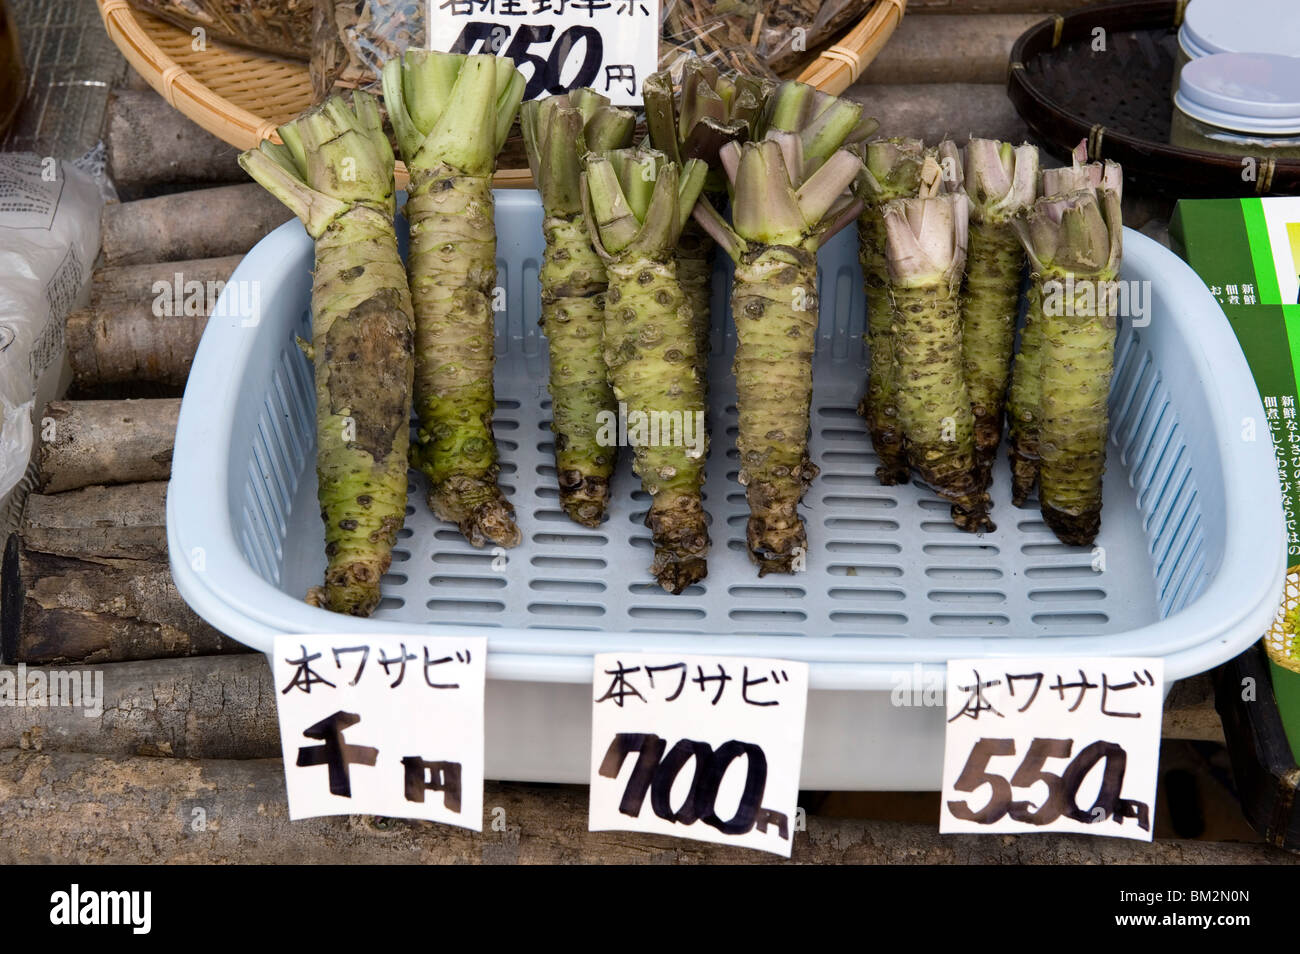 Three different sizes of raw wasabi horseradish root for sale at a market in Echizen-Ono, Fukui, Japan - Stock Image